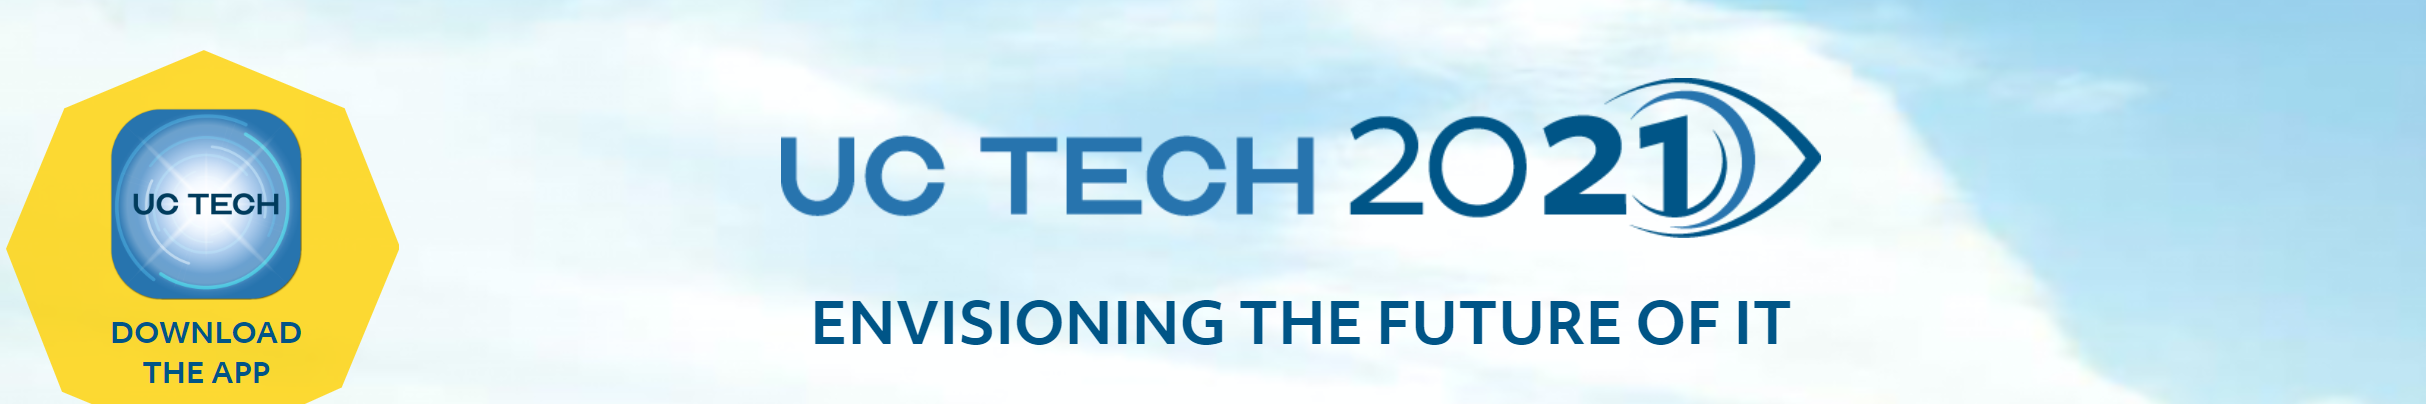 UC Tech 2021 Envisioning the Future of IT